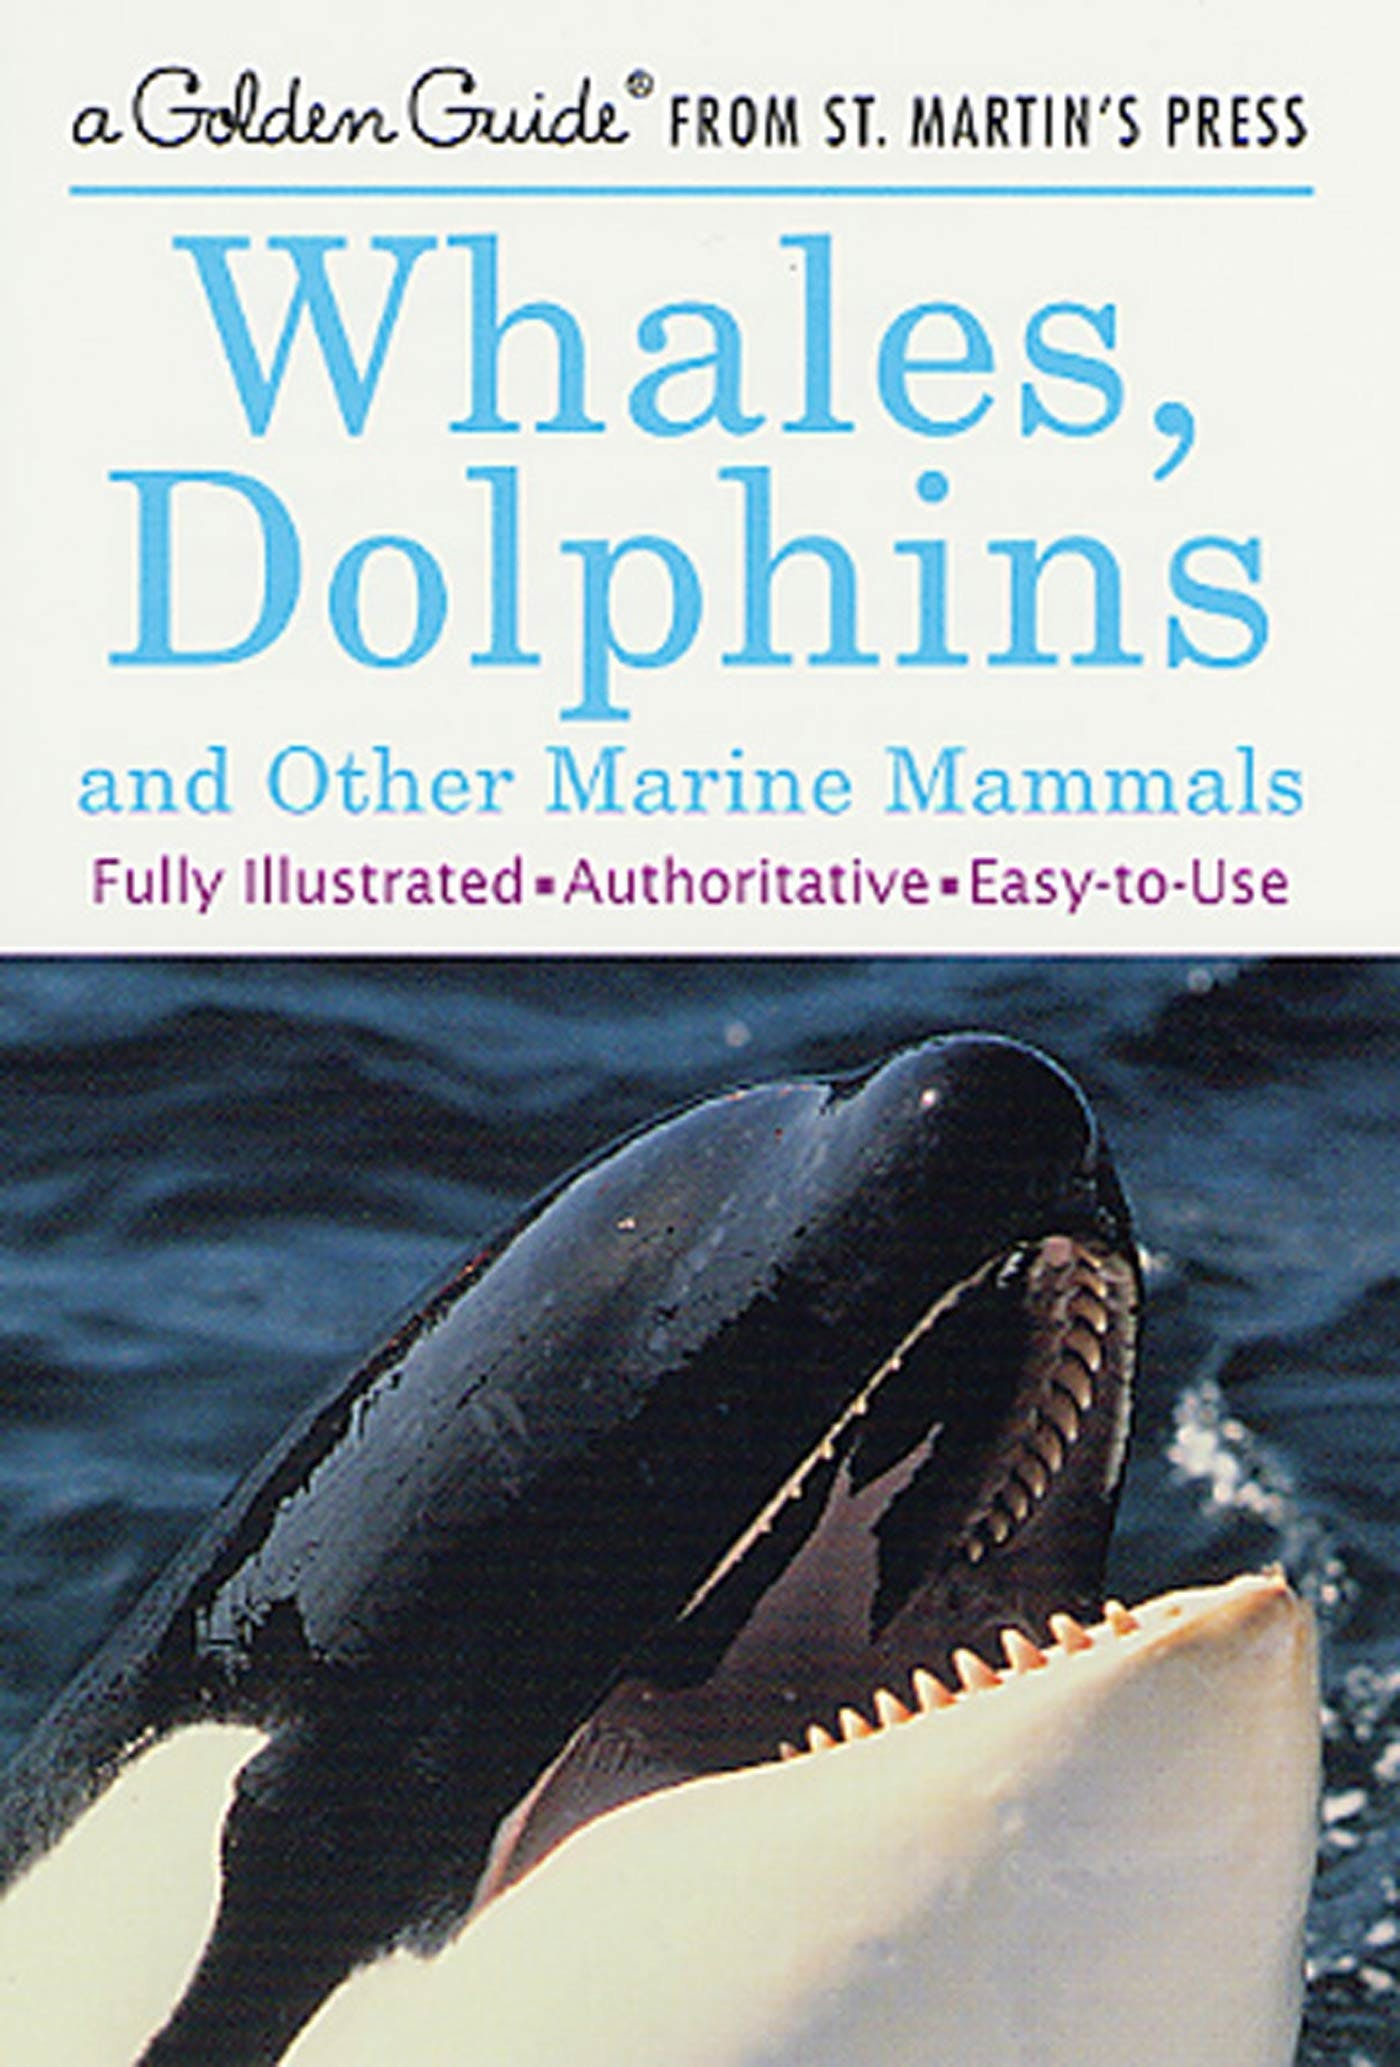 Image of Whales, Dolphins, and Other Marine Mammals